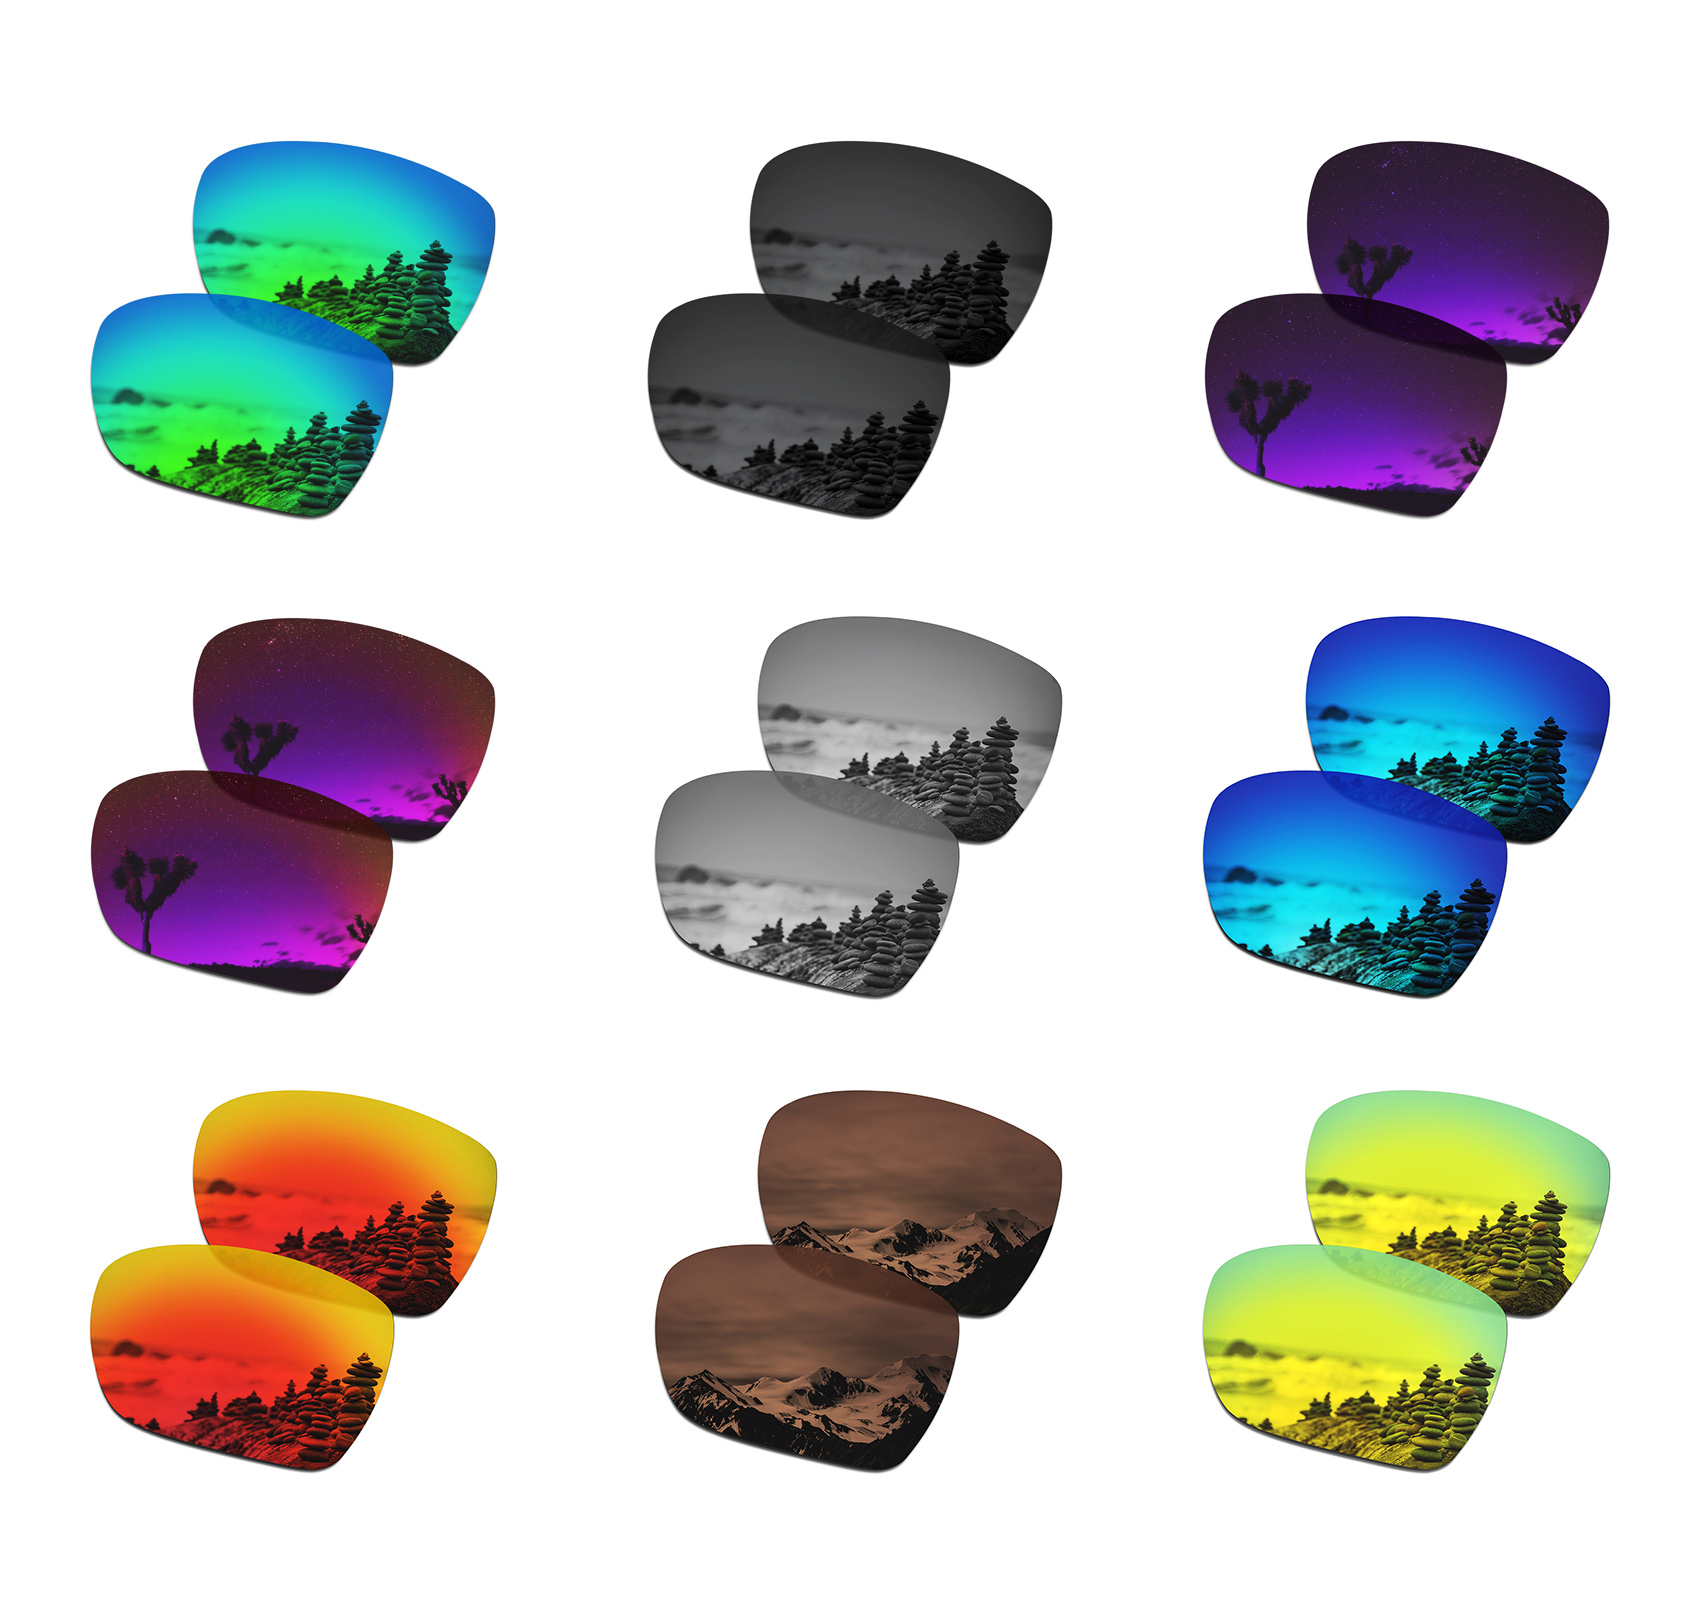 SmartVLT Polarized Replacement Lenses For Oakley Deviation Sunglasses - Multiple Options